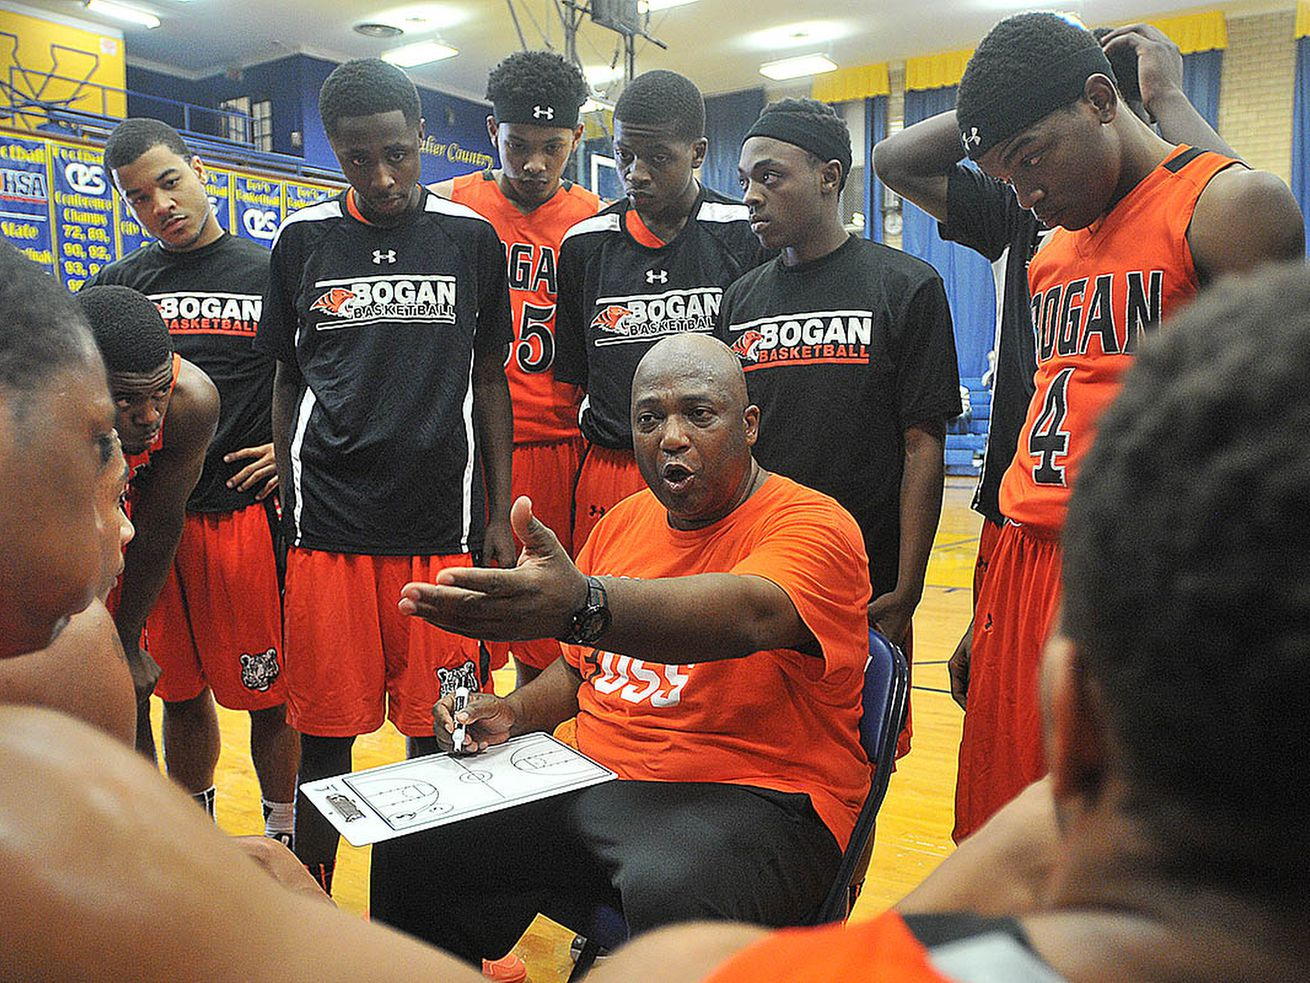 Bogan coach Arthur Goodwin talks to his players during a time out.